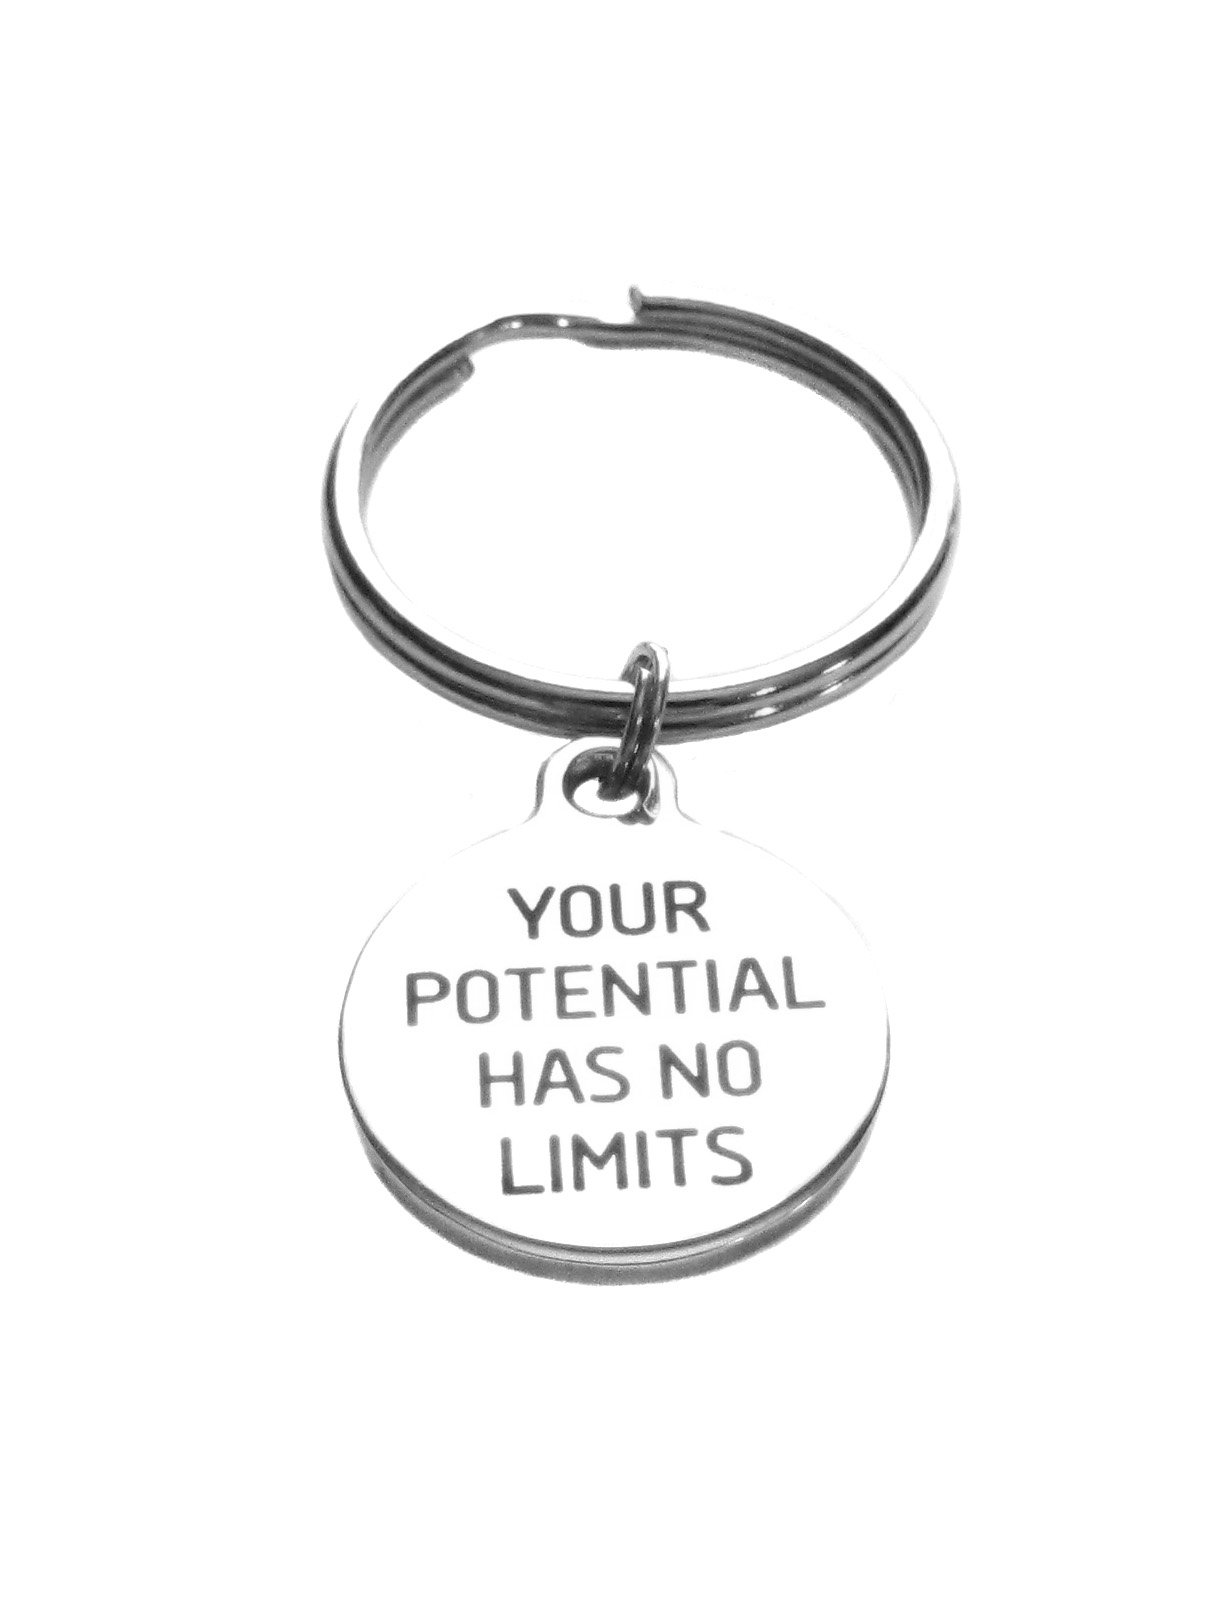 Your Potential Has No Limits Stainless Steel Charm Key Chain Inspirational Gift